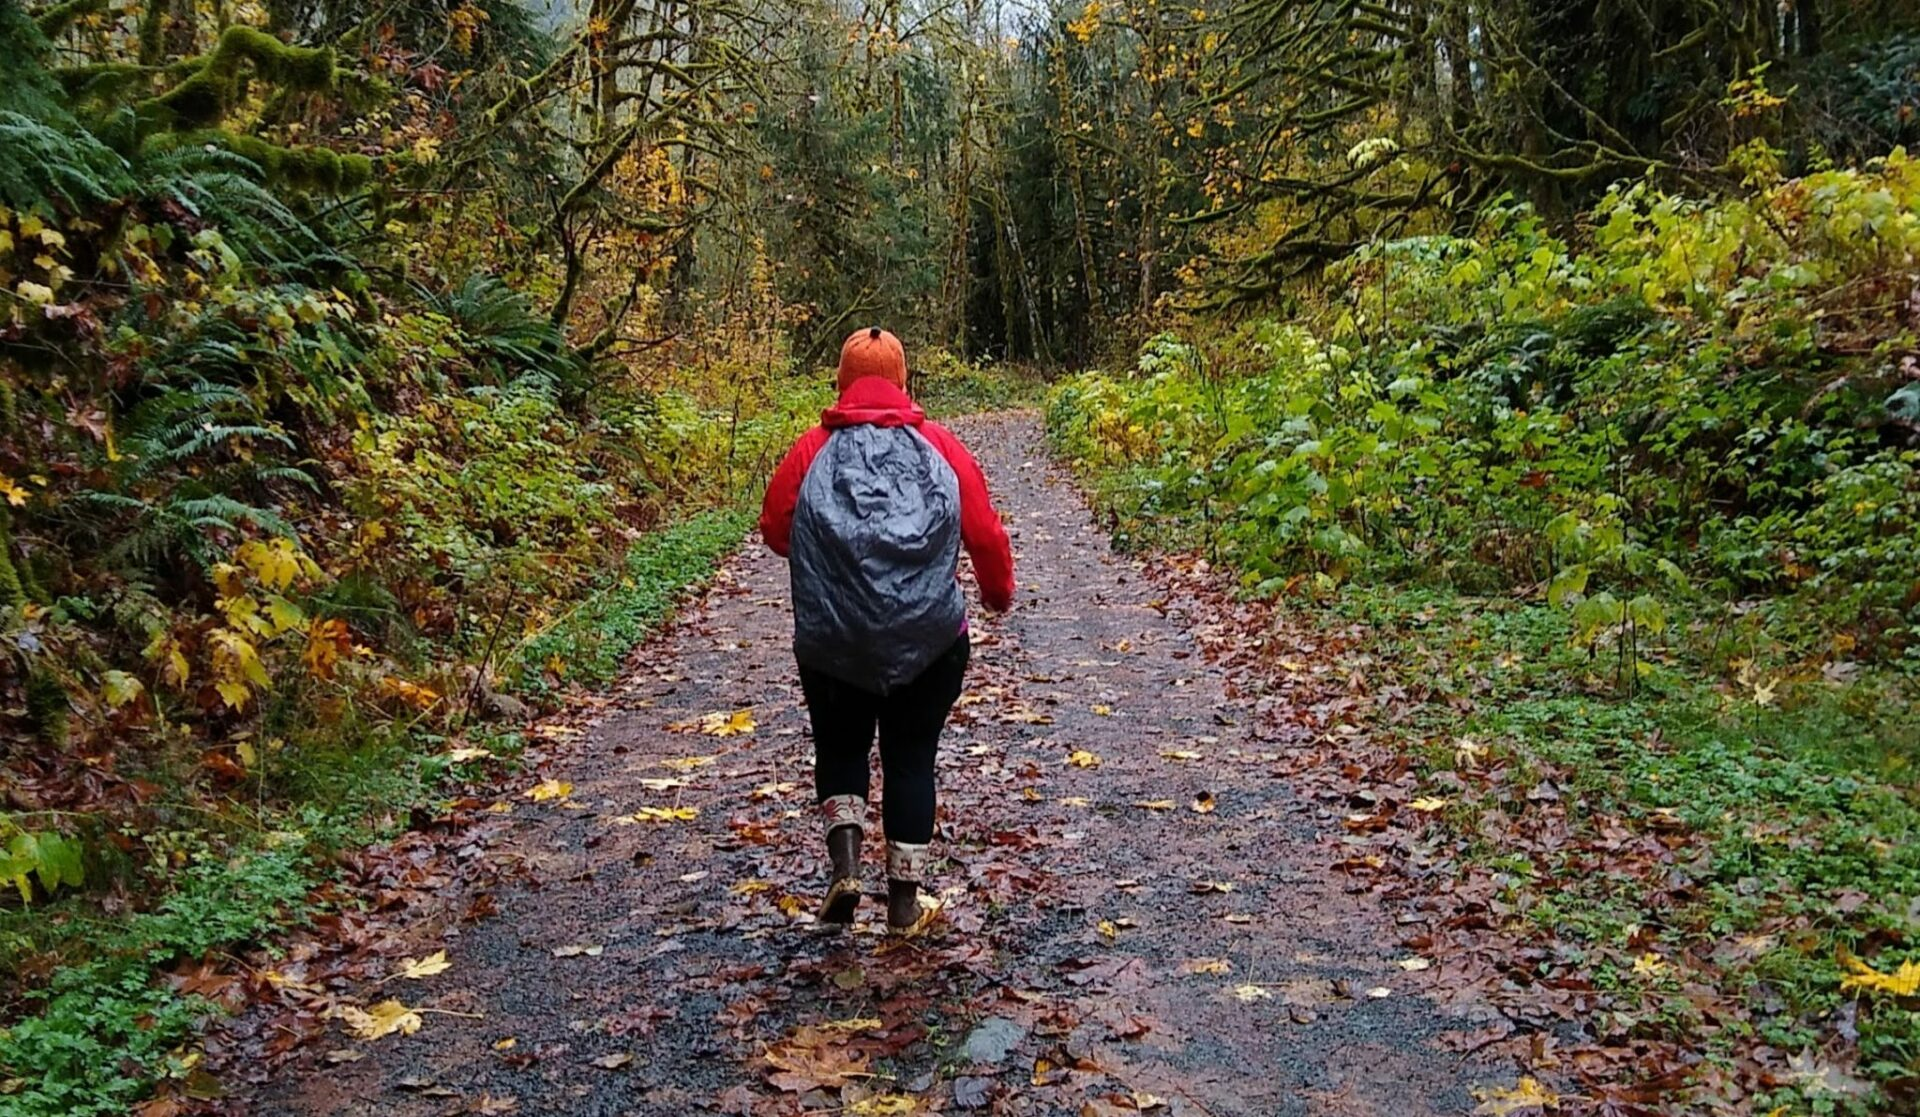 A person on a wet hiking trail in the rain. The person is wearing rubber boots, black leggings, a red rainjacket and an orange hat as well as a backpack with a rain cover. They are walking on a gravel trail with undergrowth and trees on each side